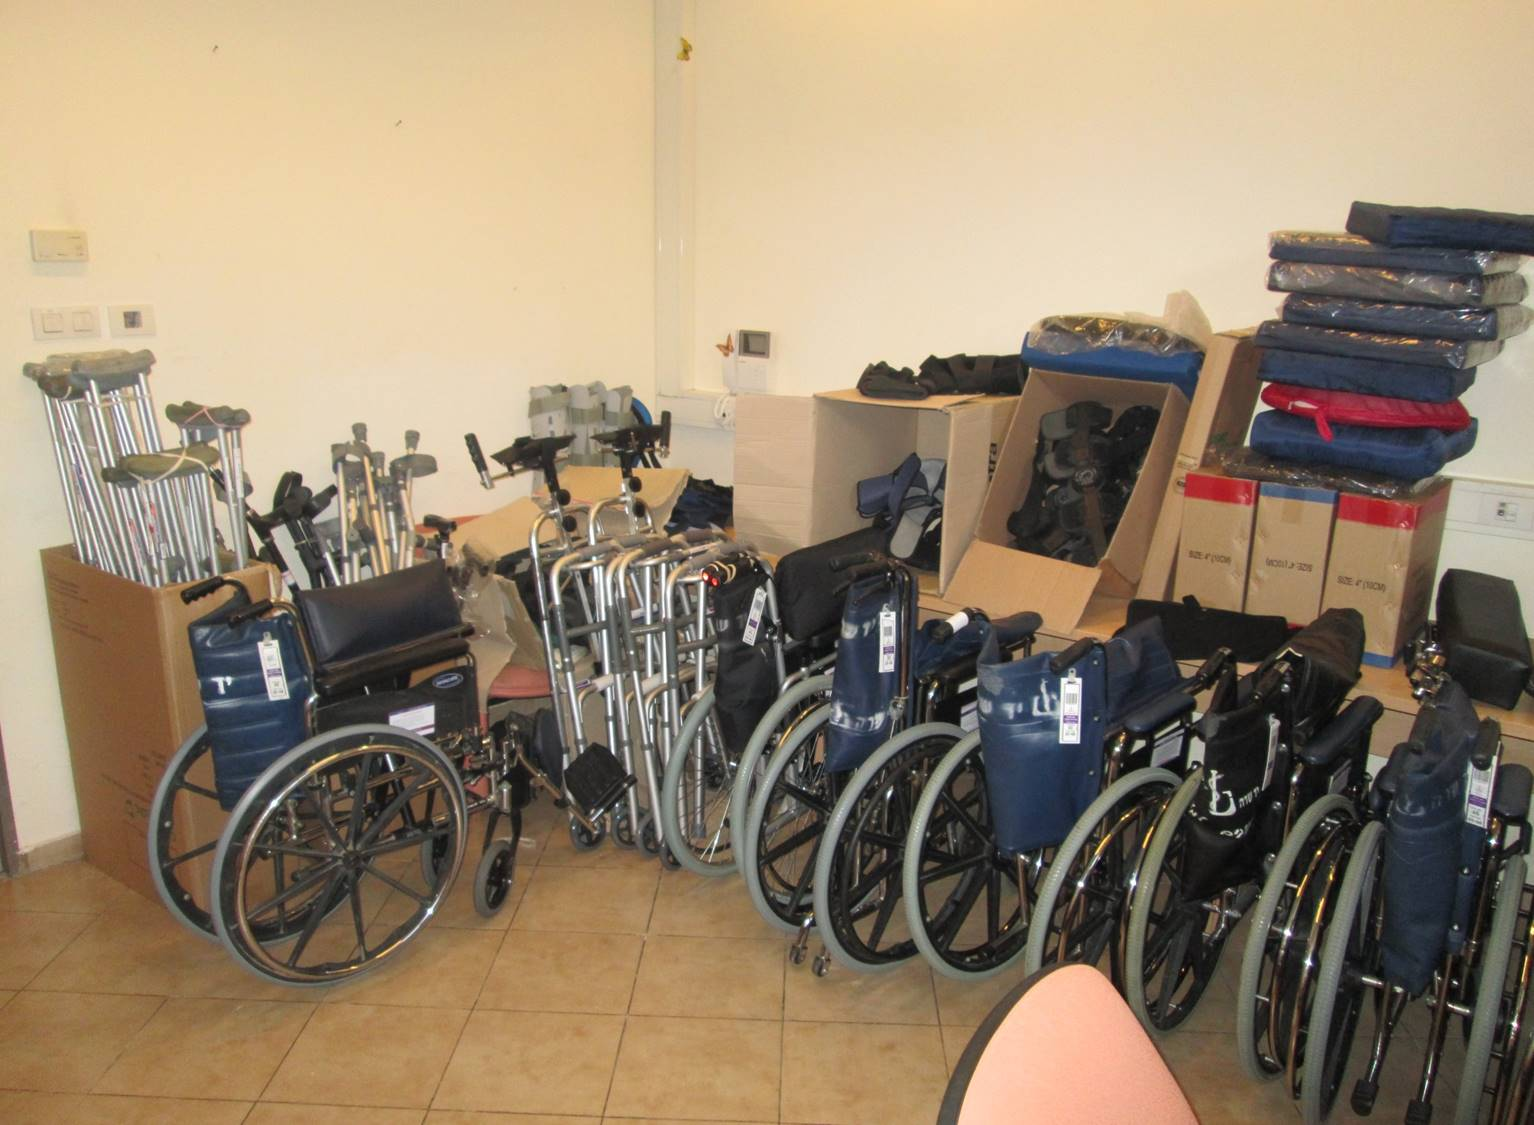 Warehouse with wheelchairs, crutches and other mobility devices